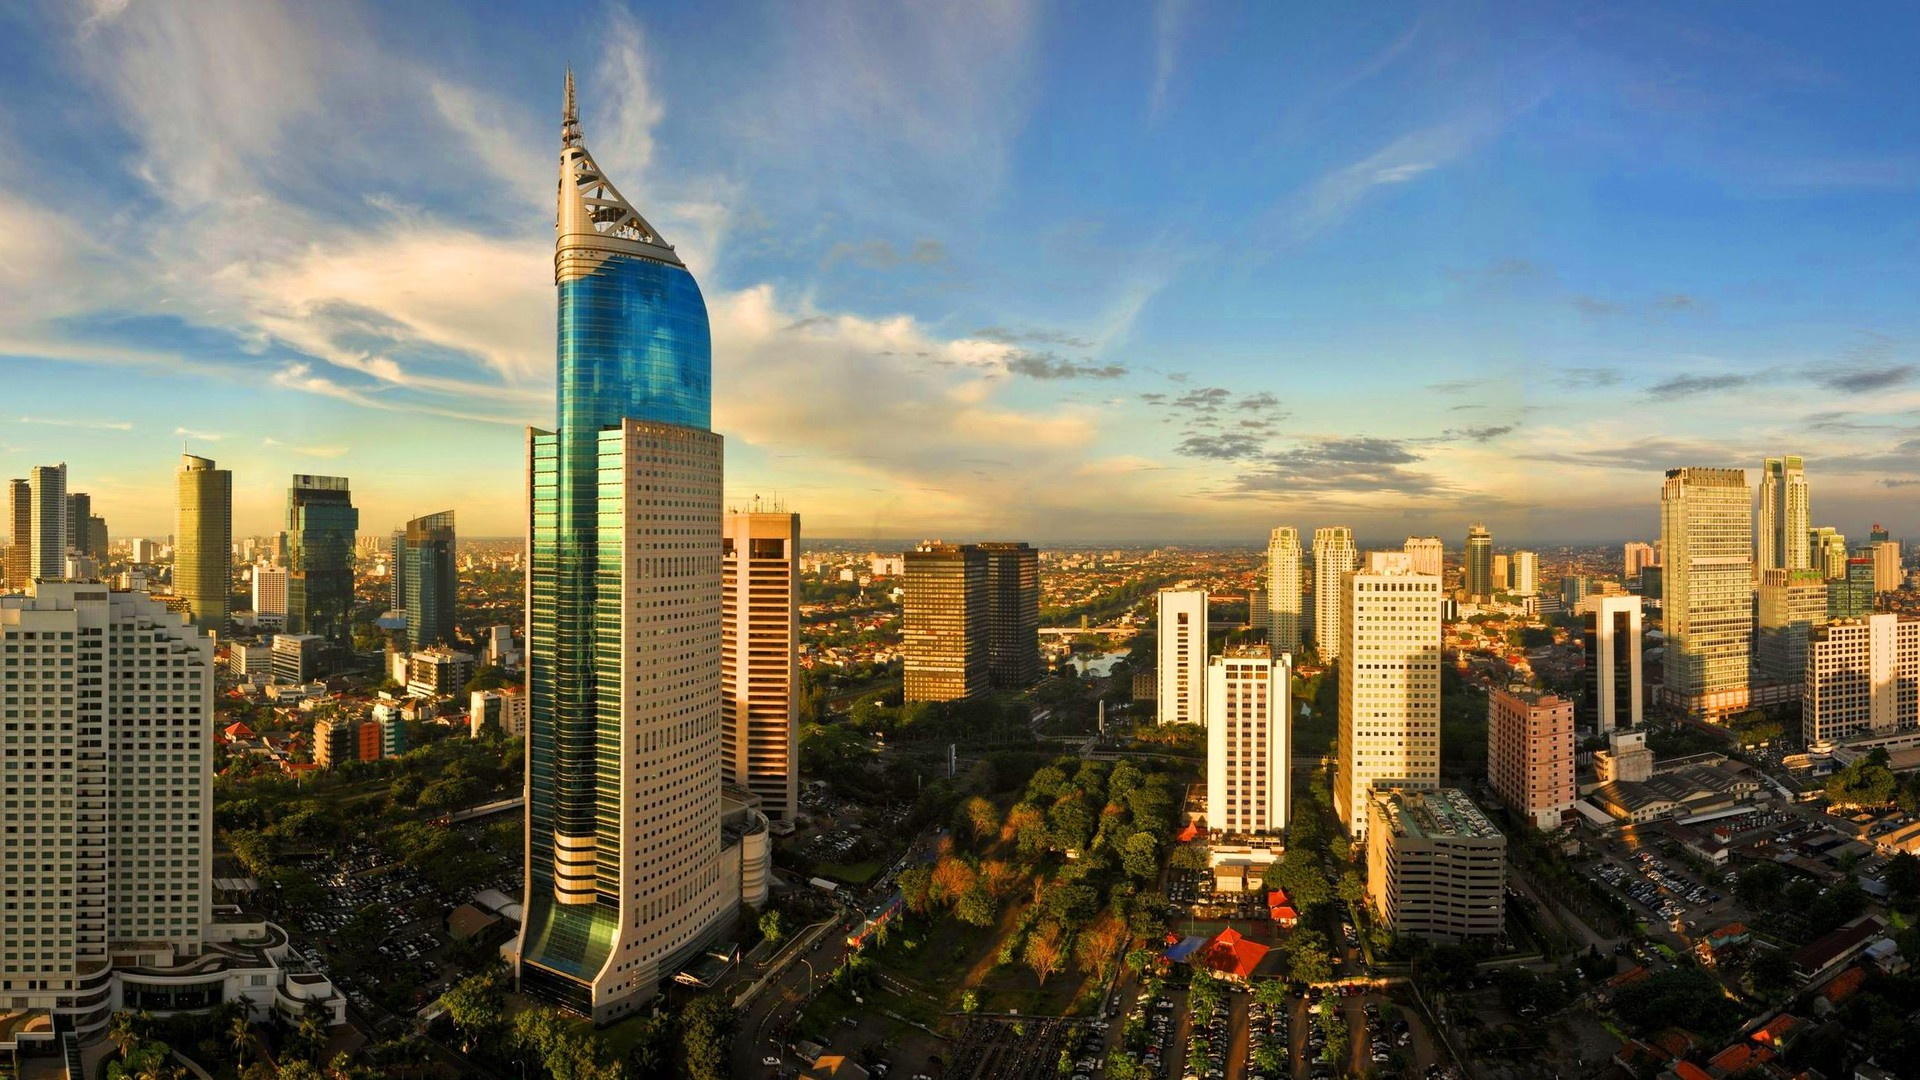 Jakarta images jakarta,the capital city of indonesia HD wallpaper ...